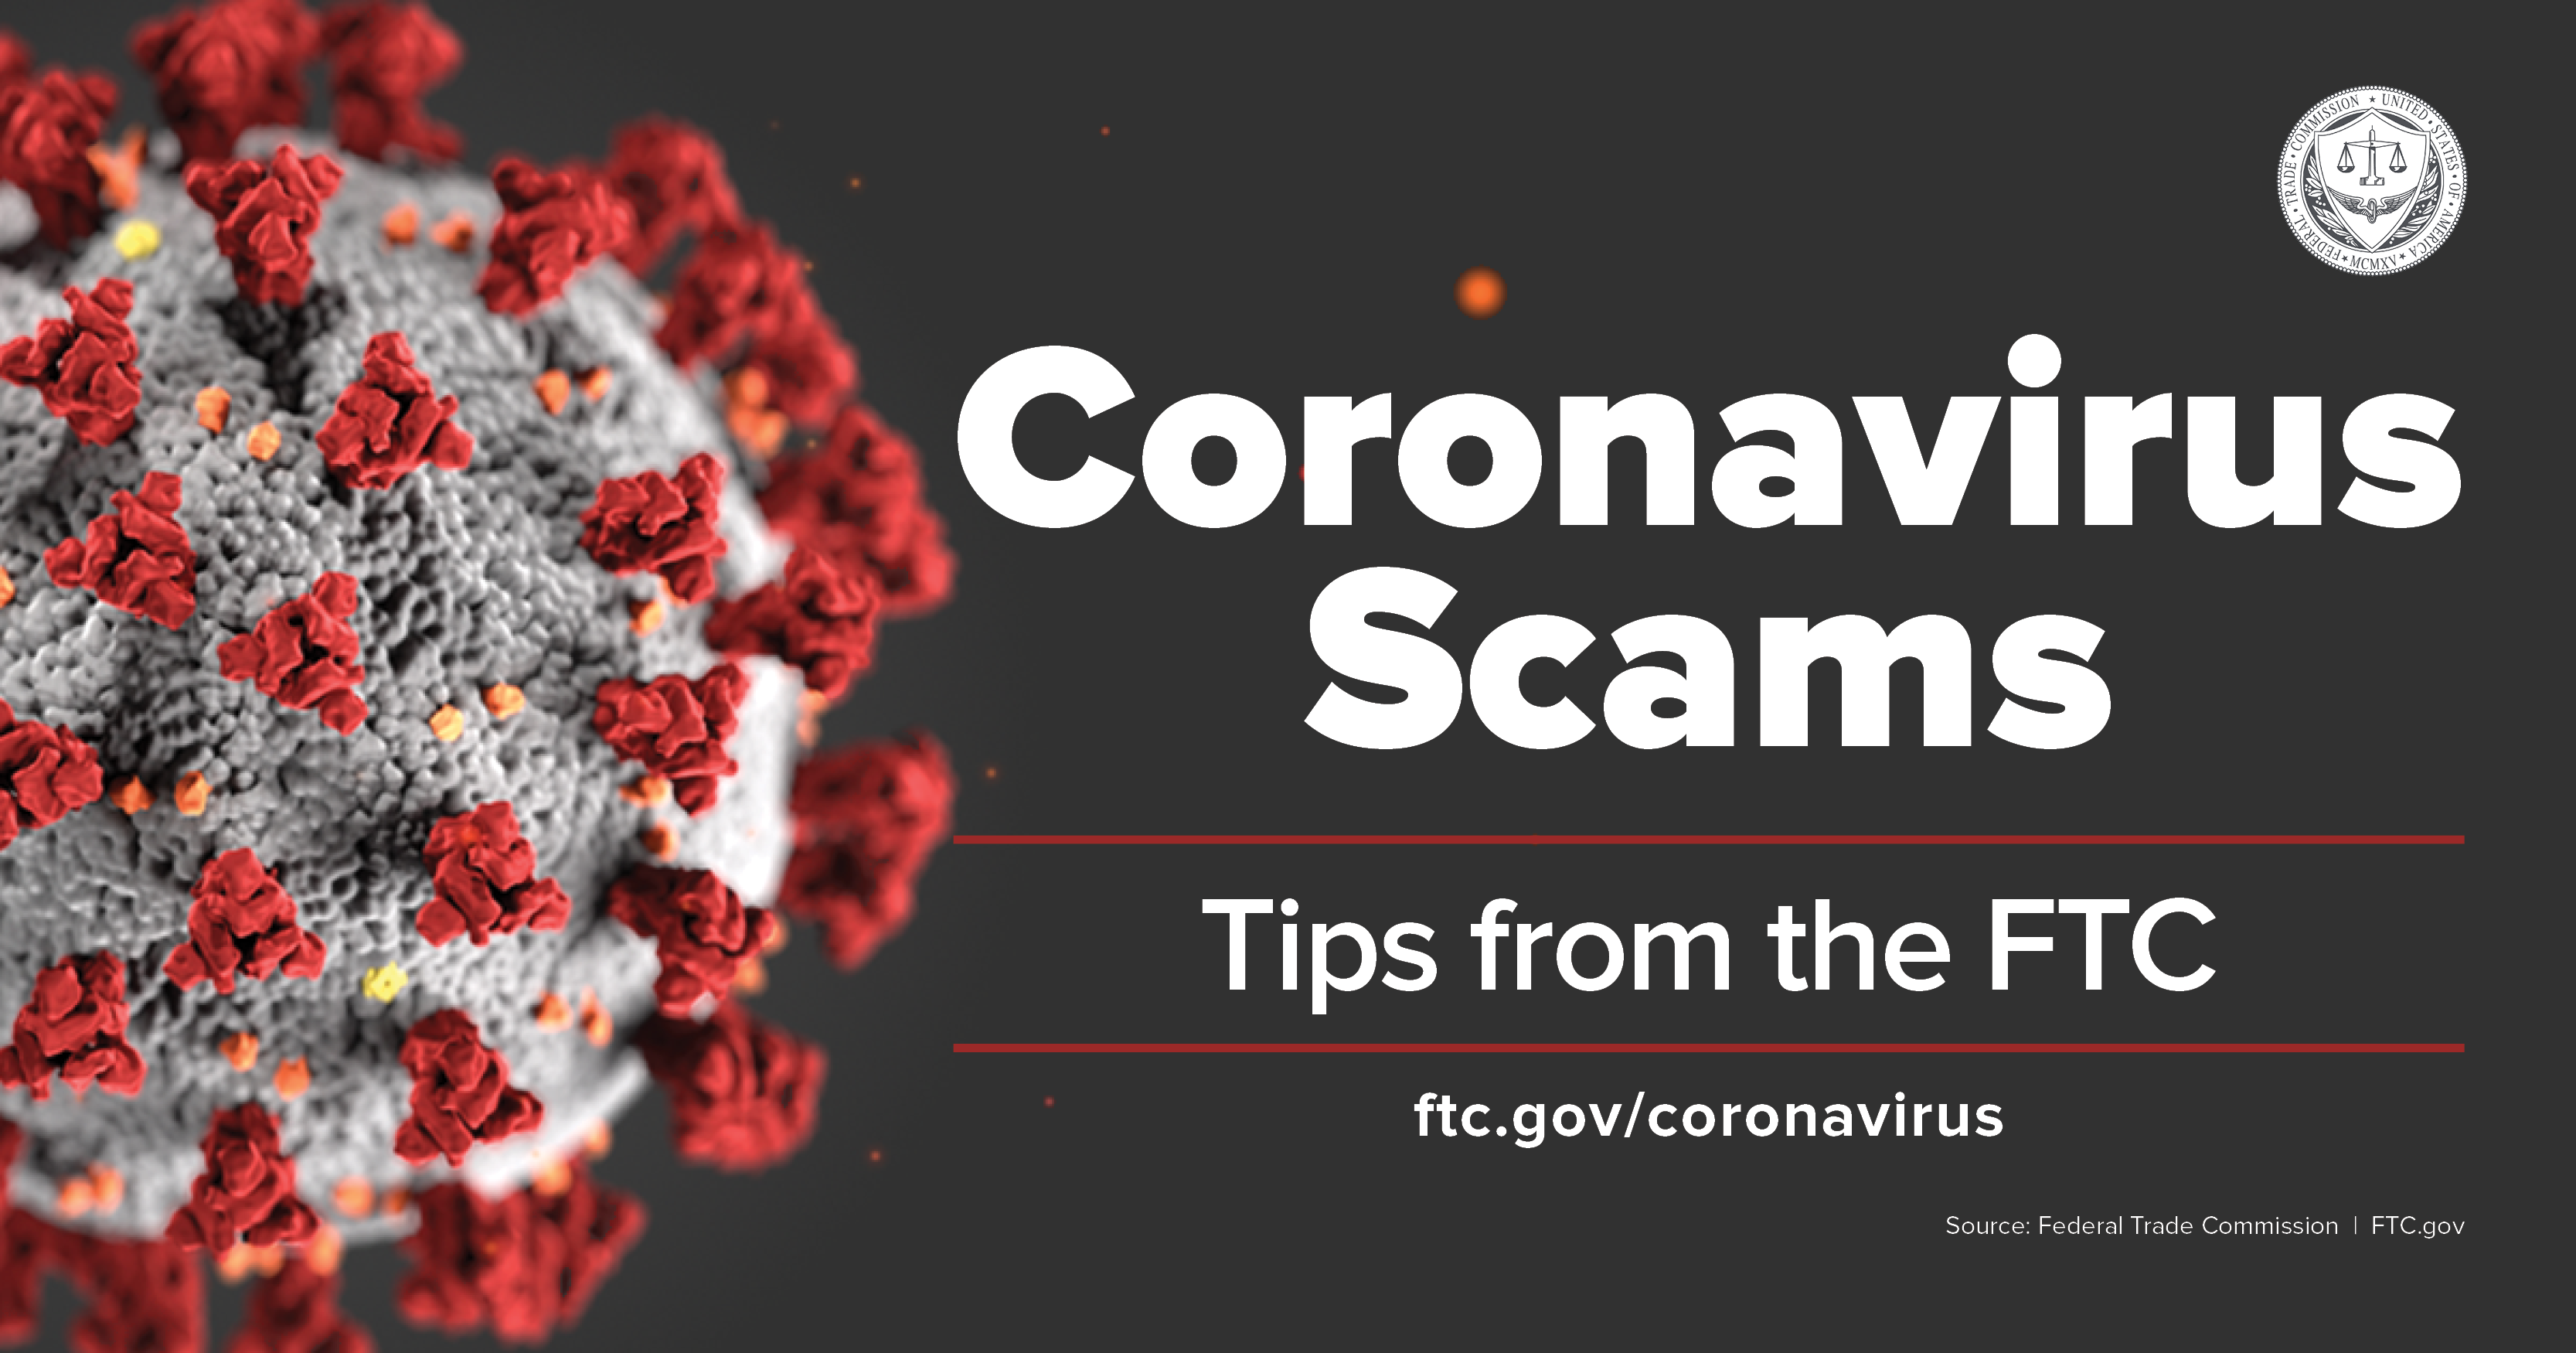 Coronavirus Scam tips from the FTC